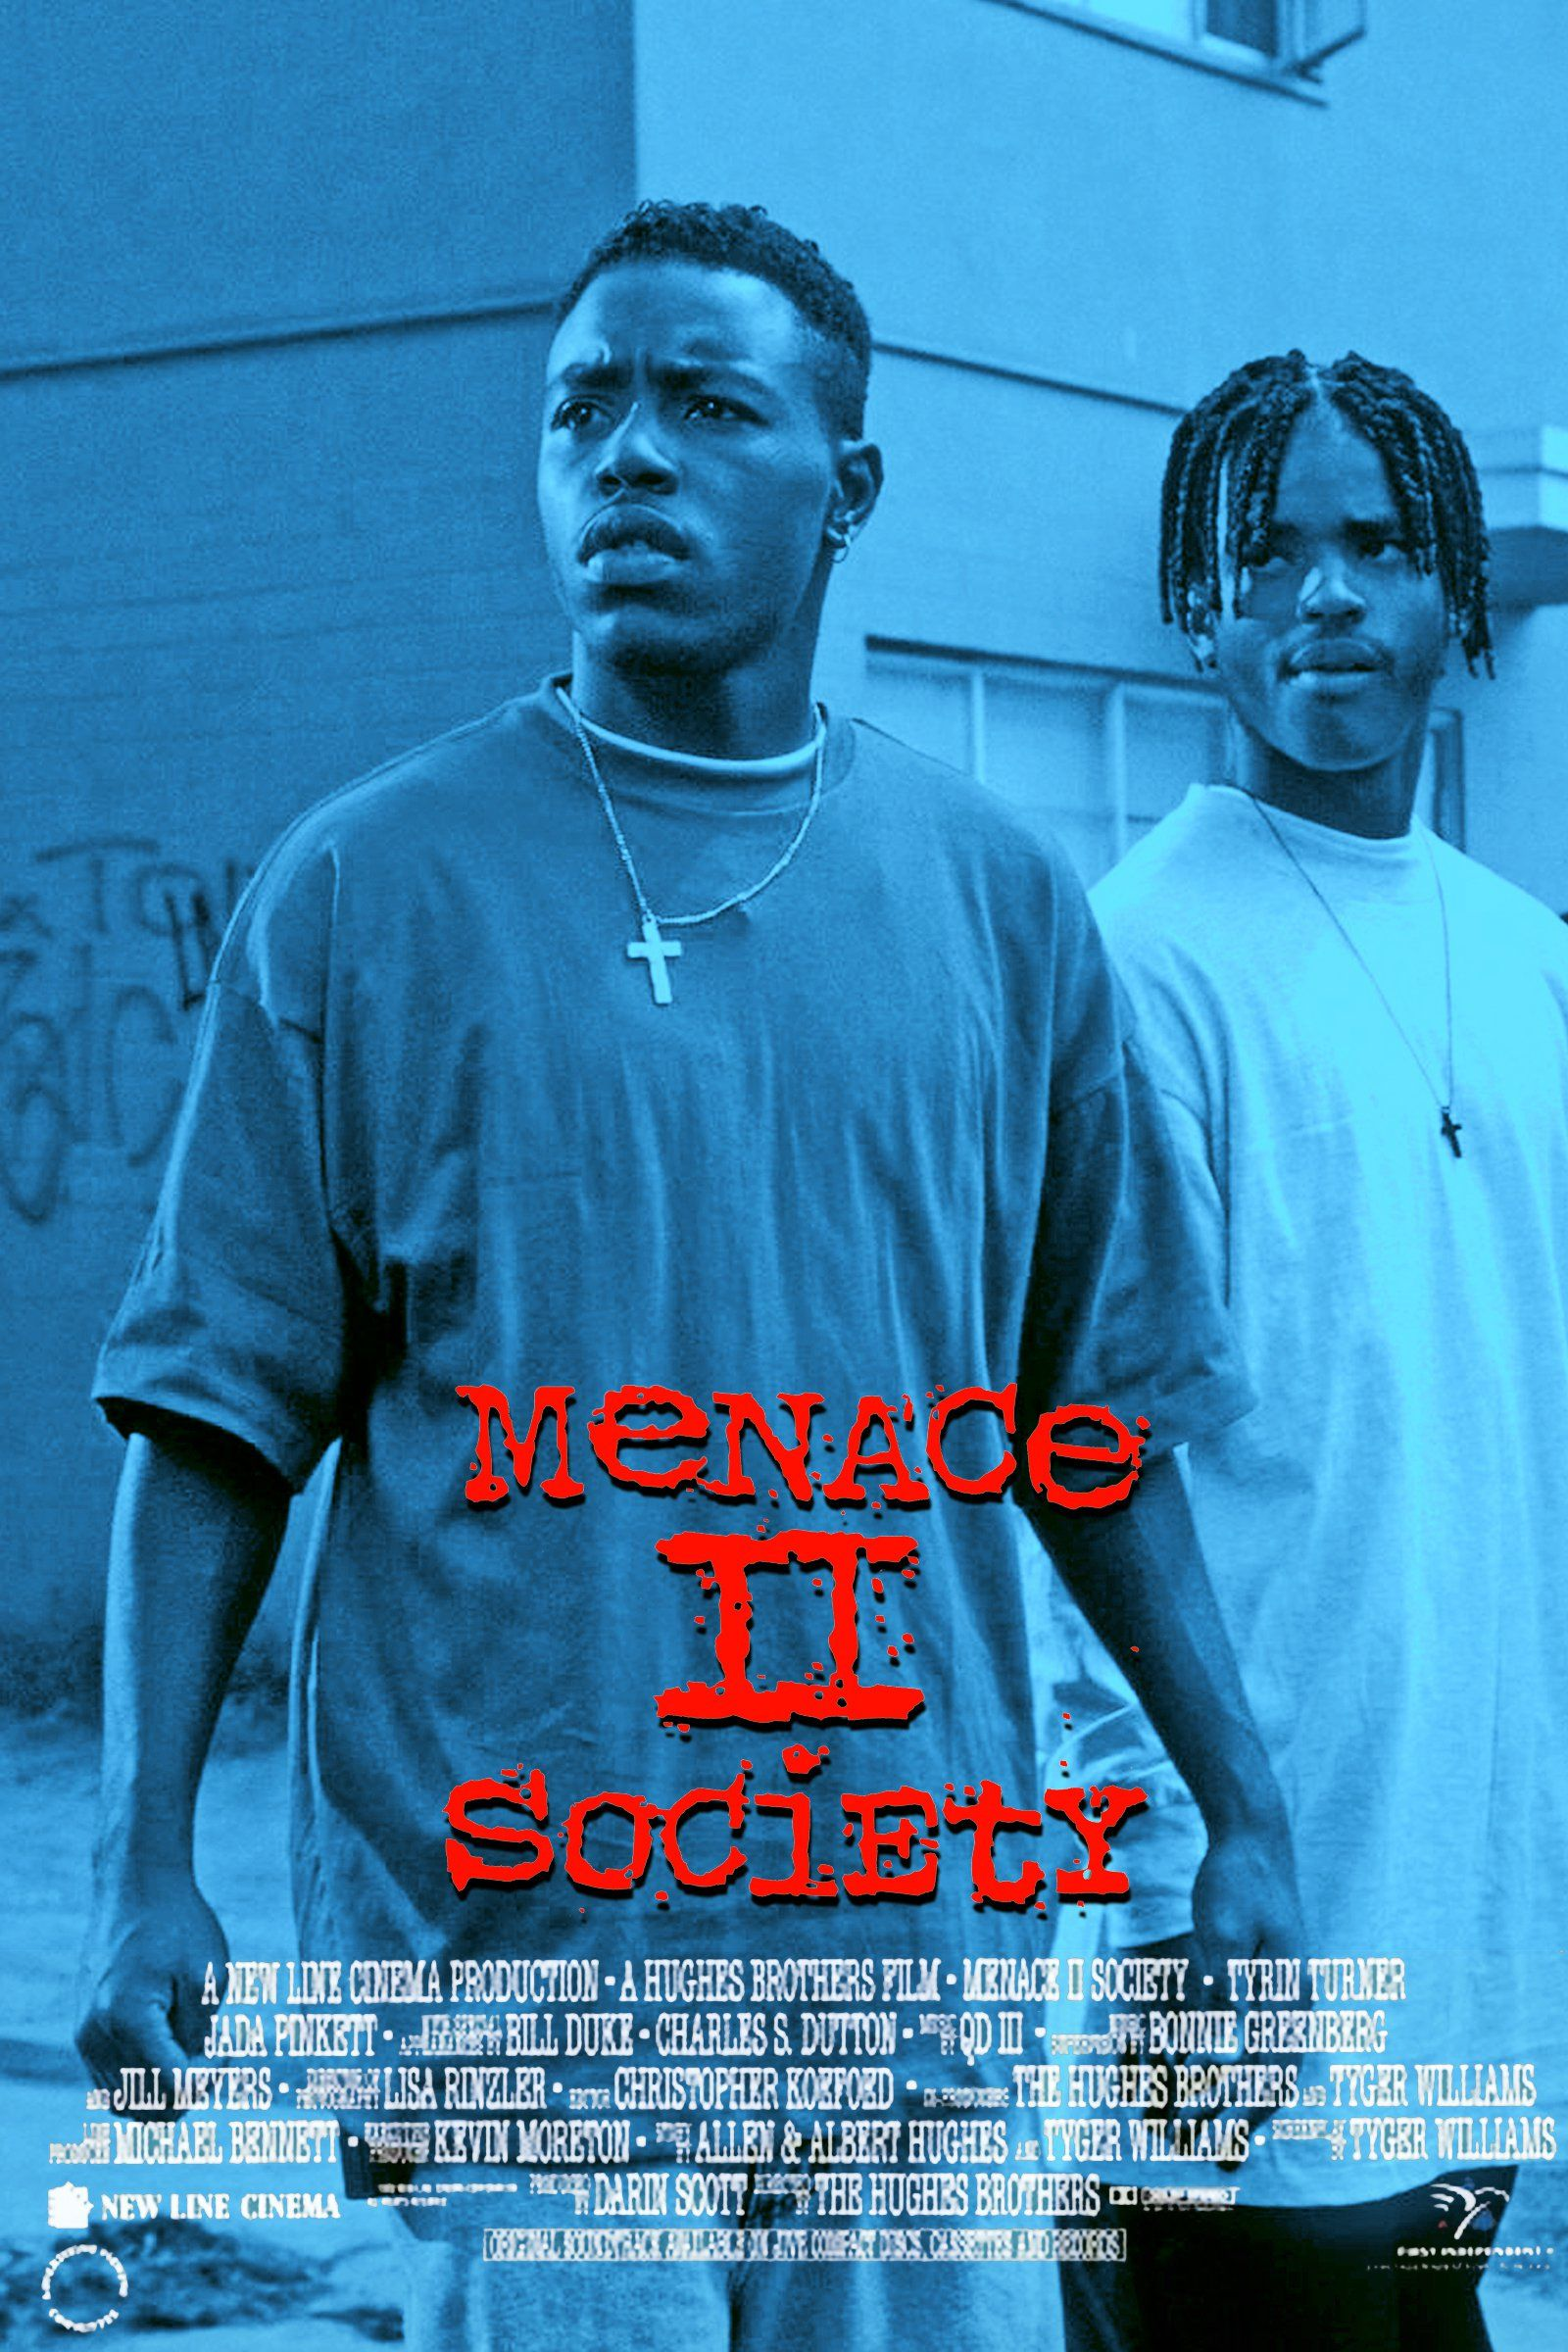 menace to society movie poster - Google Search | Movie and ...